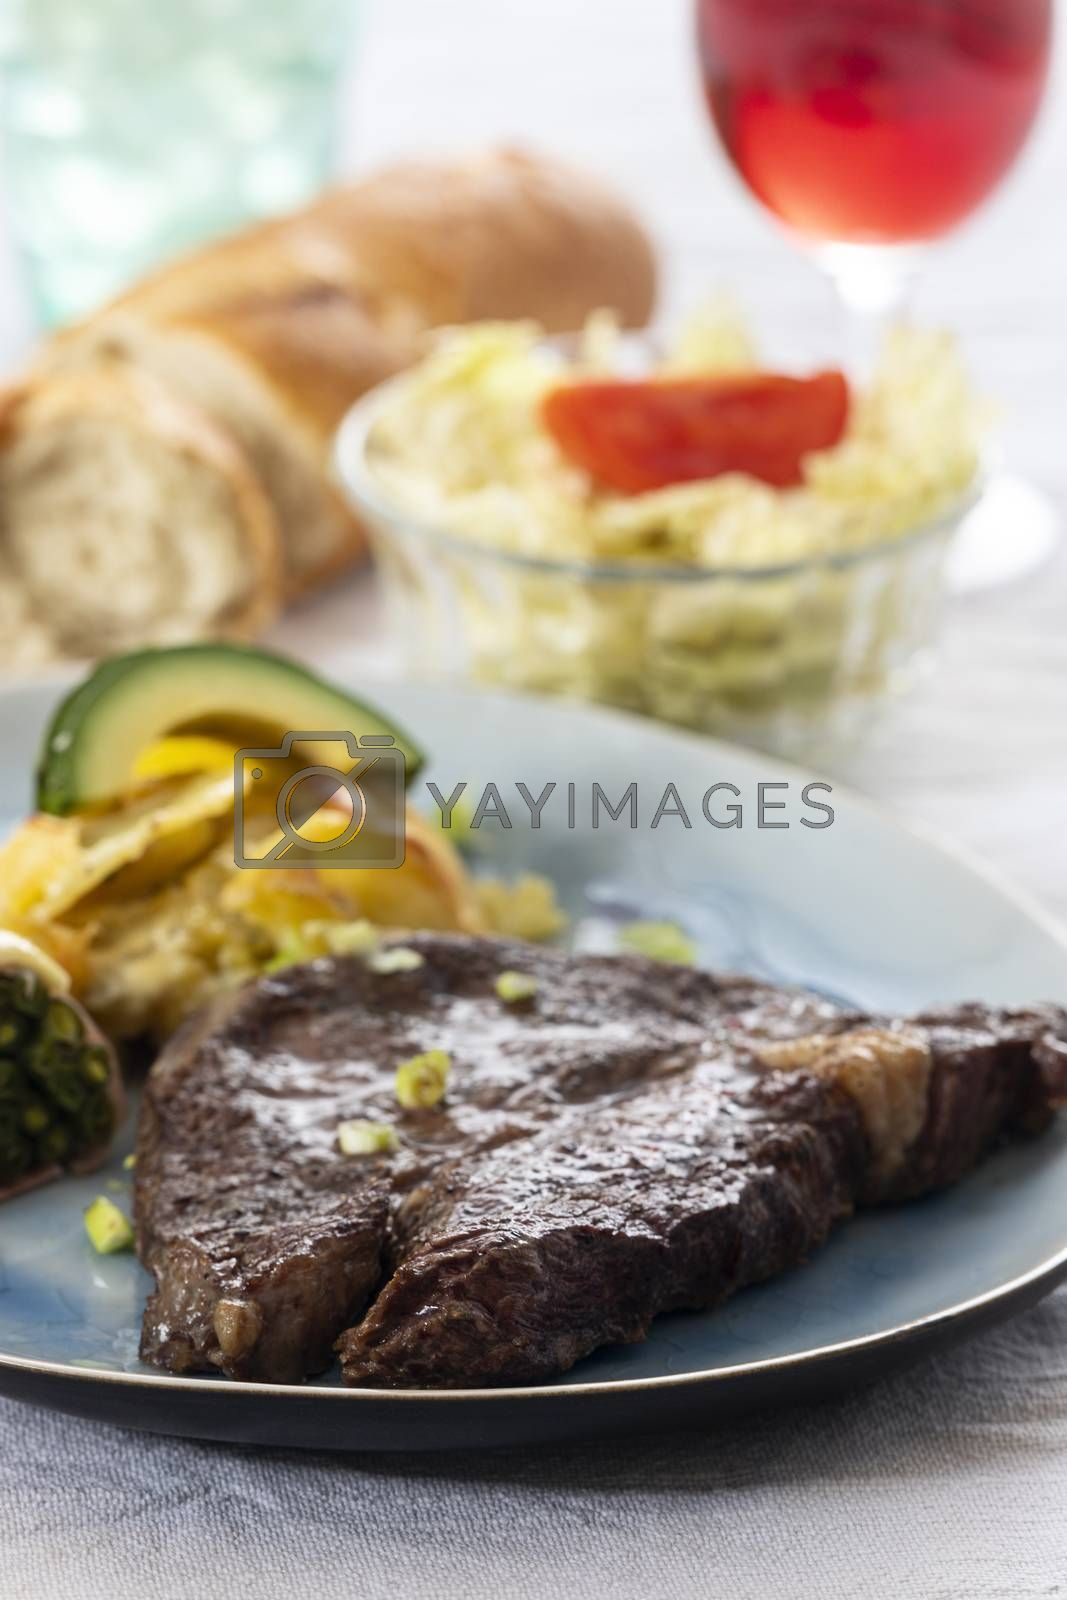 grilled steak with potato gratin